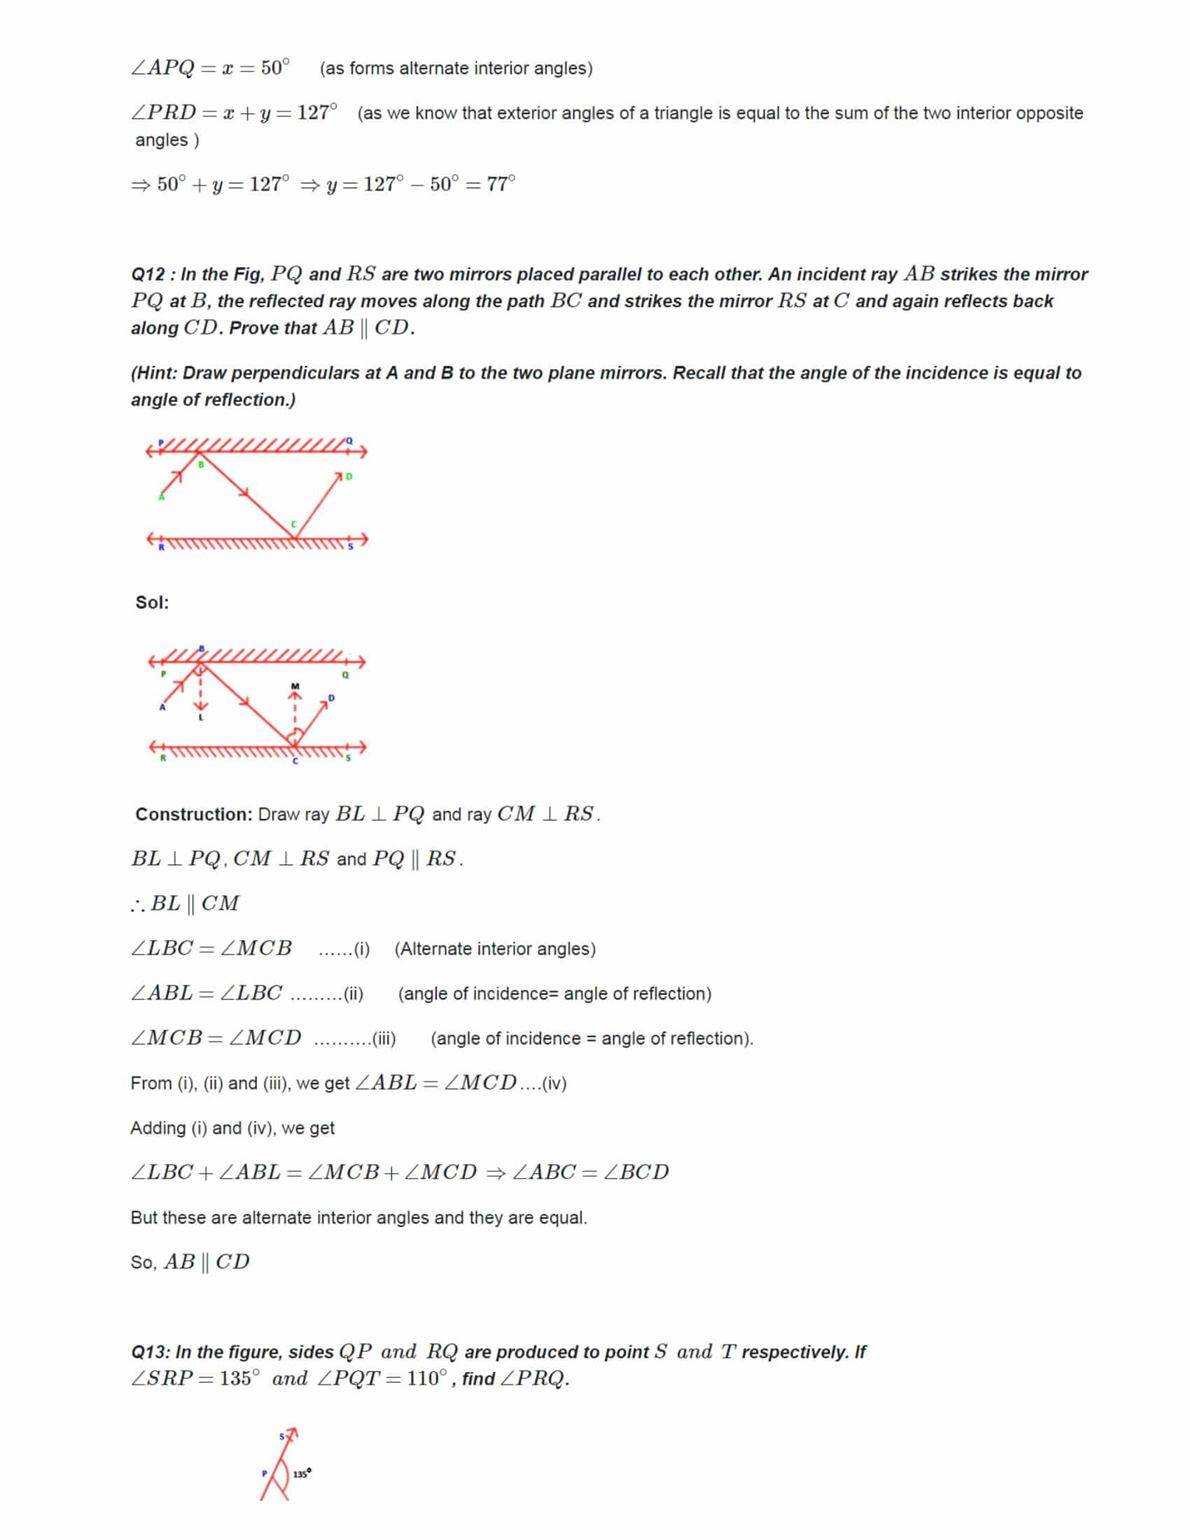 Ncert Solutions For Class 9 Maths Chapter 6 Ex 6.1